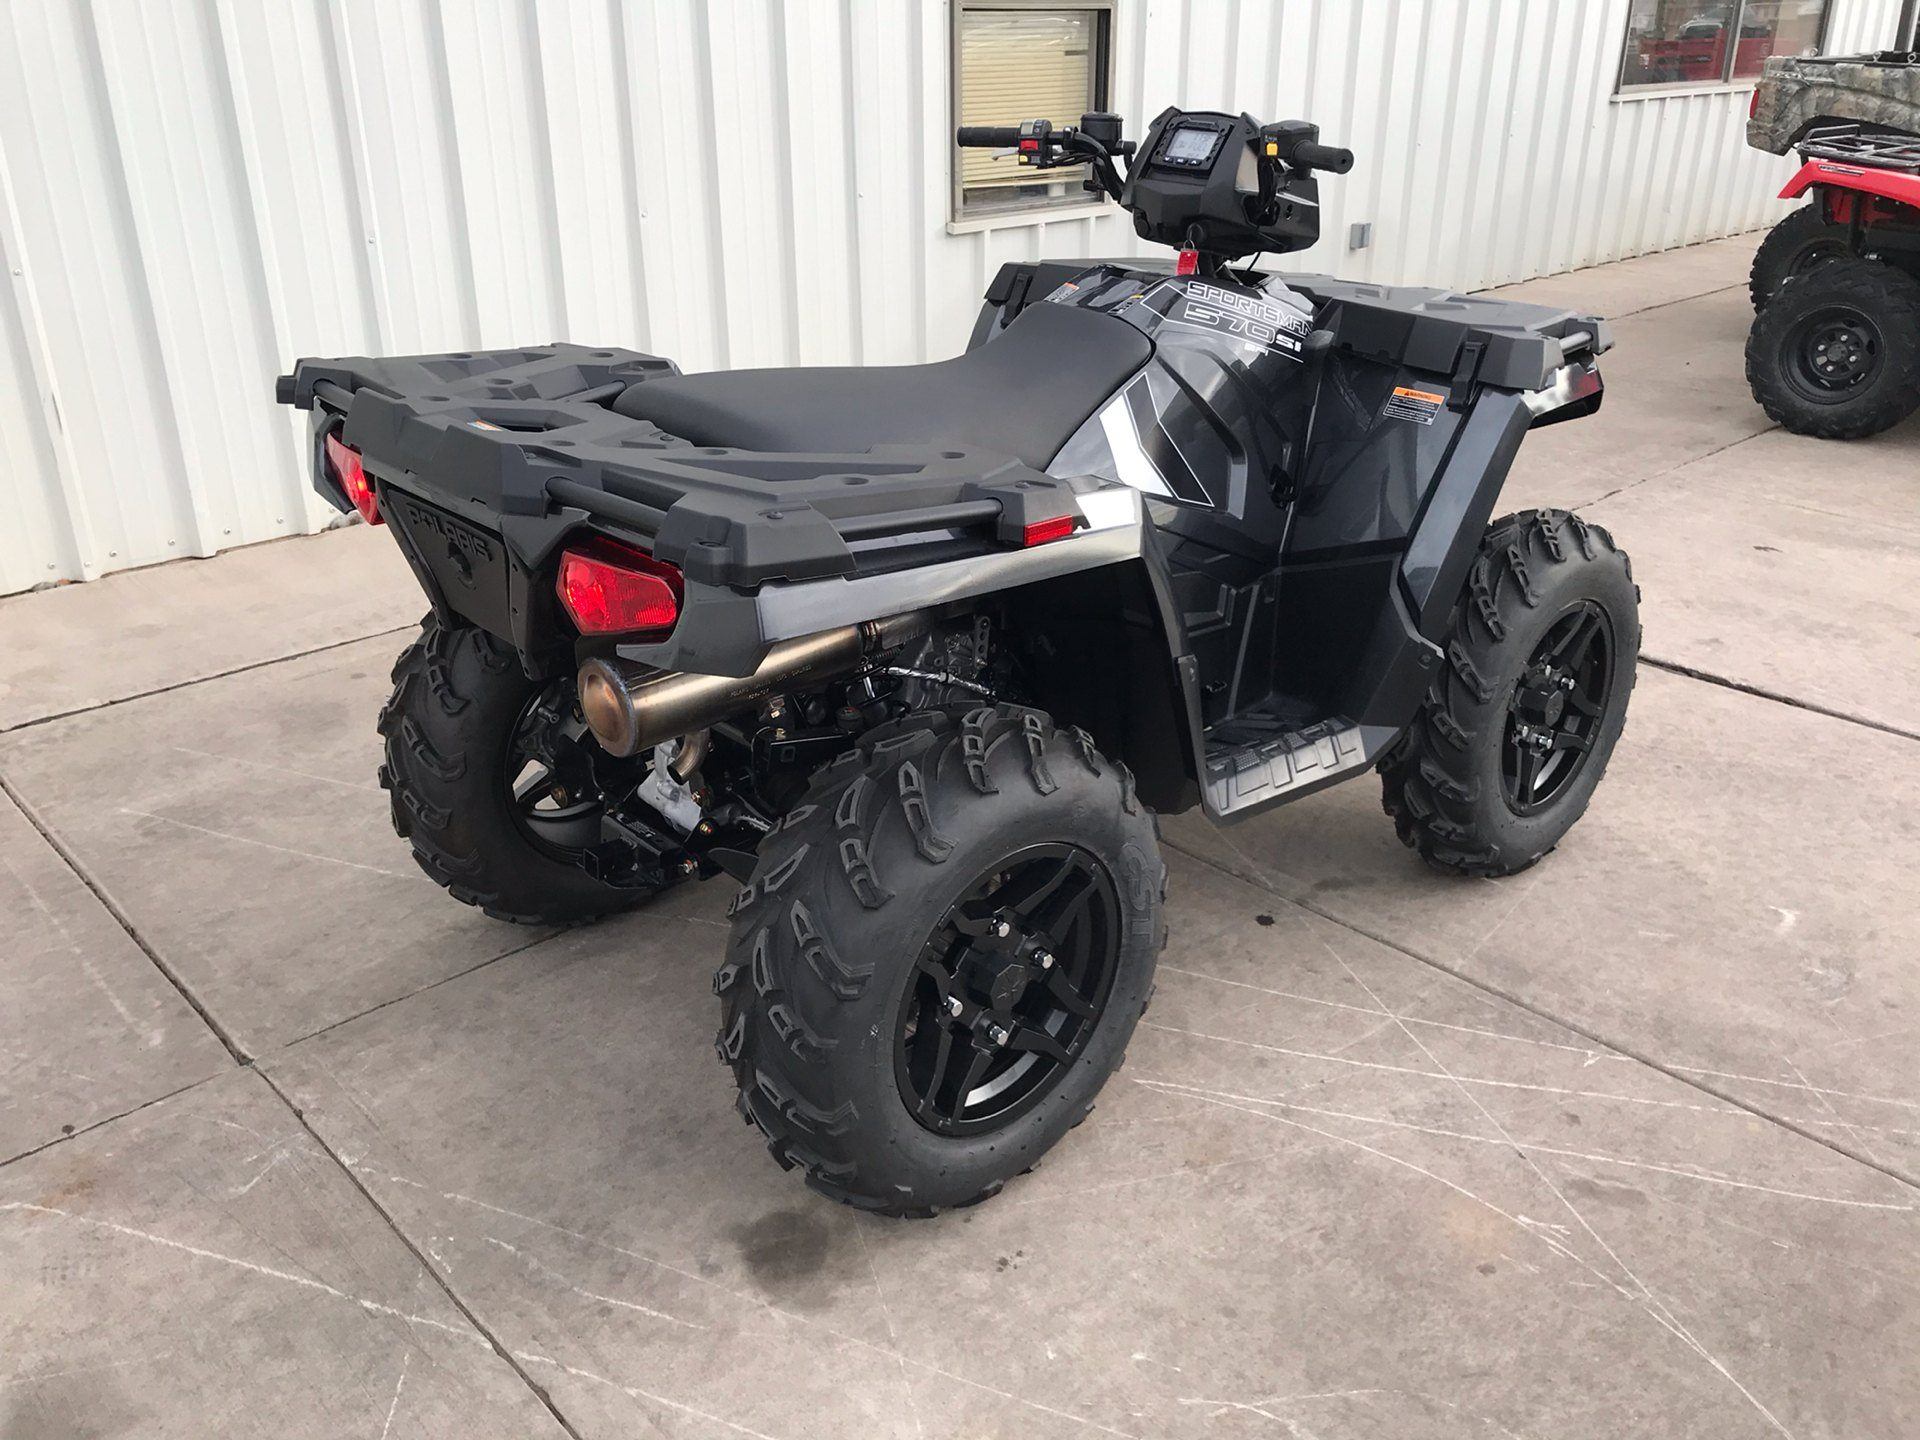 2019 Polaris Sportsman 570 SP in Alamosa, Colorado - Photo 6